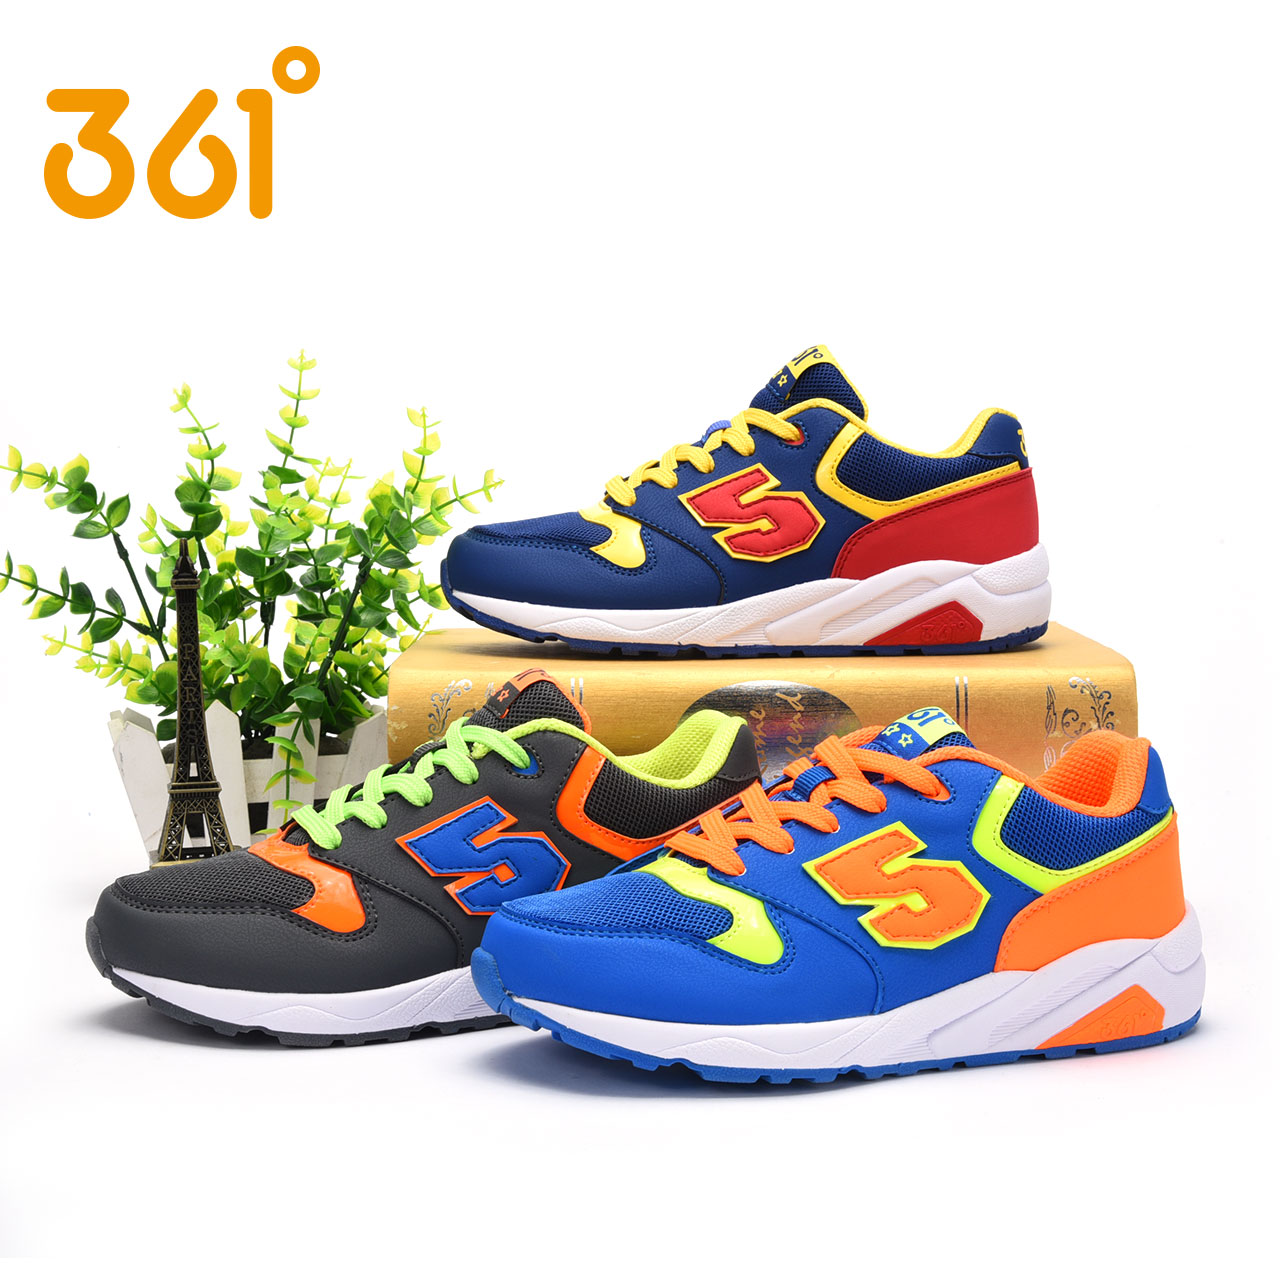 361 autumn sports shoes zhongshan university children's shoes boys winter 2016 new breathable mesh running shoes 361 degrees